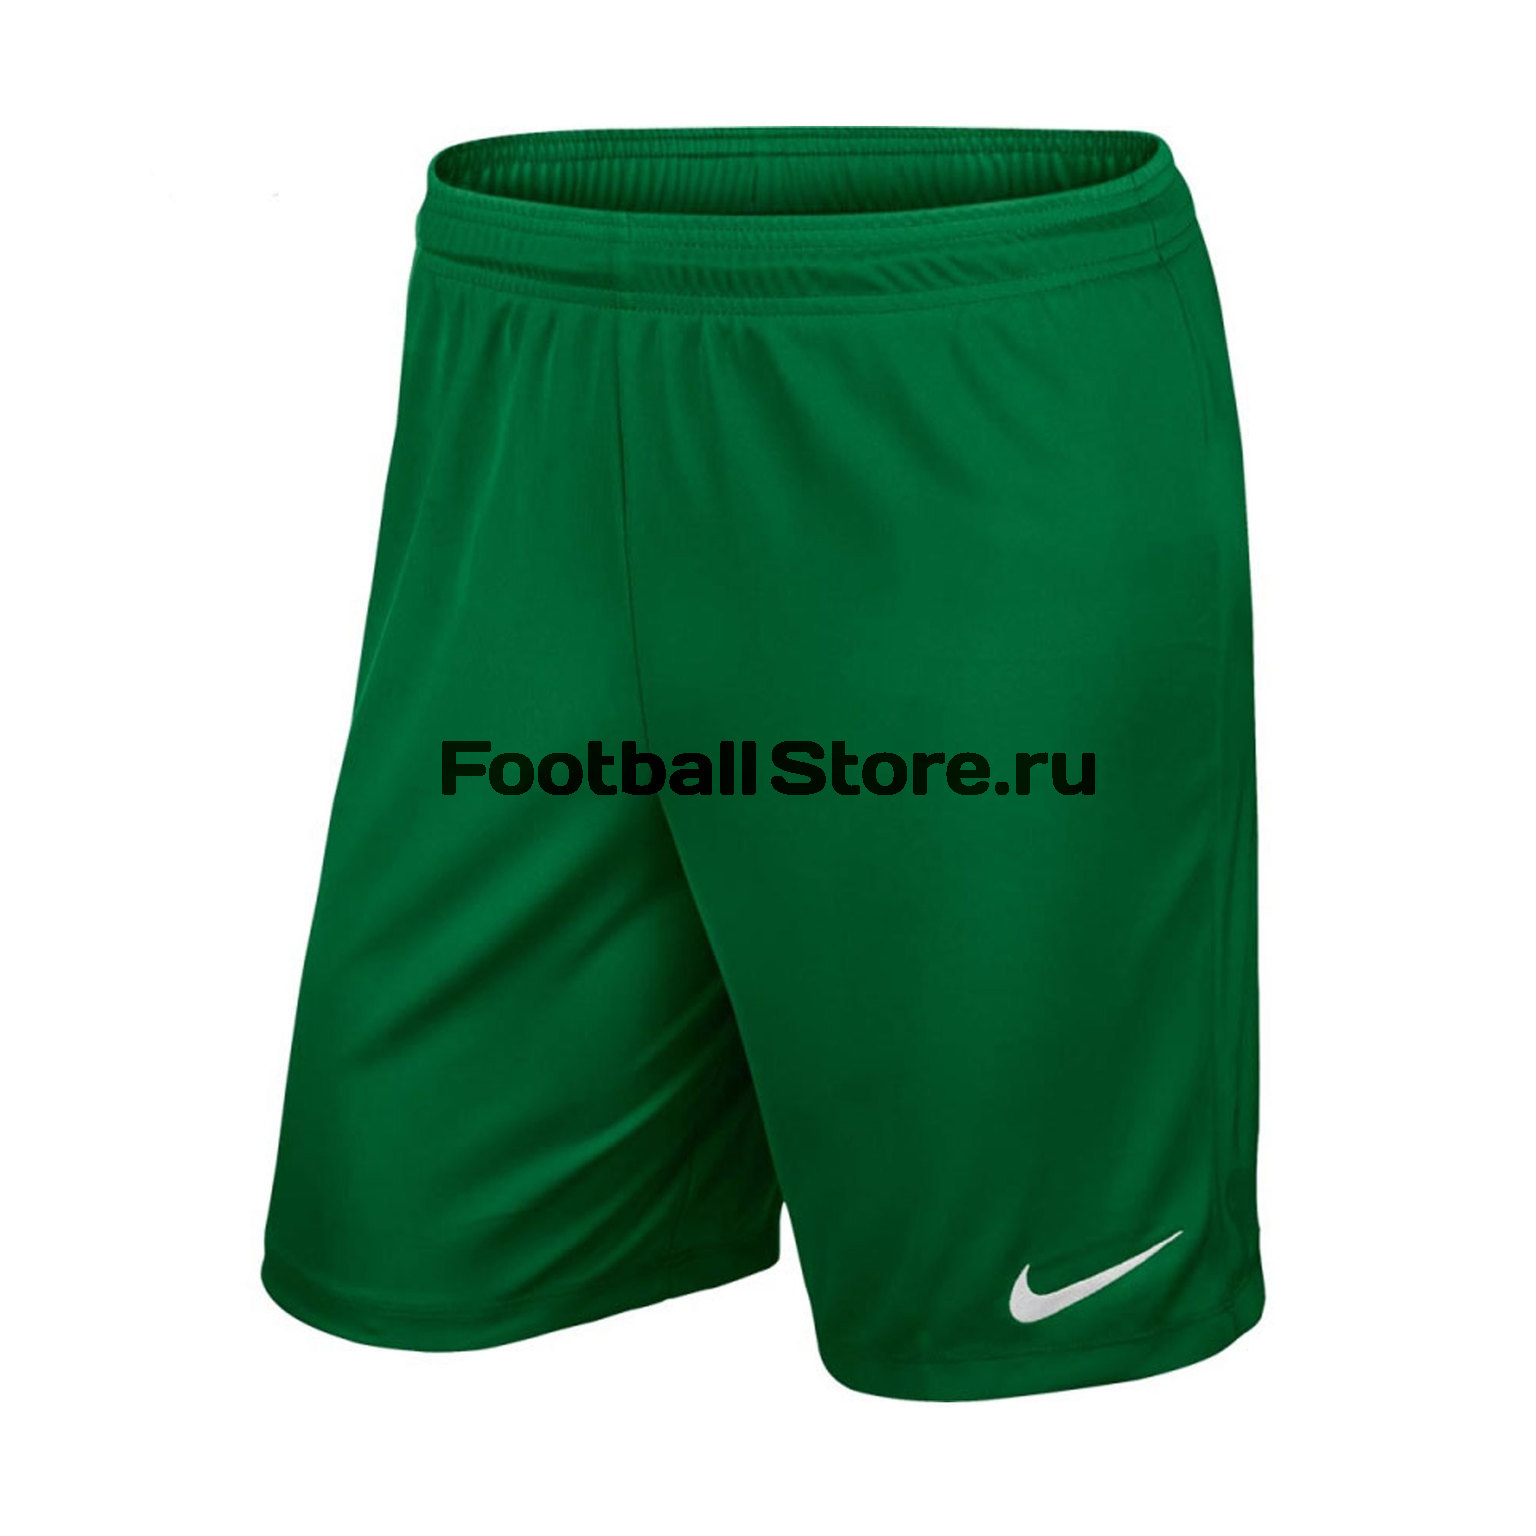 Шорты Nike Park II KNIT Short NB 725887-302